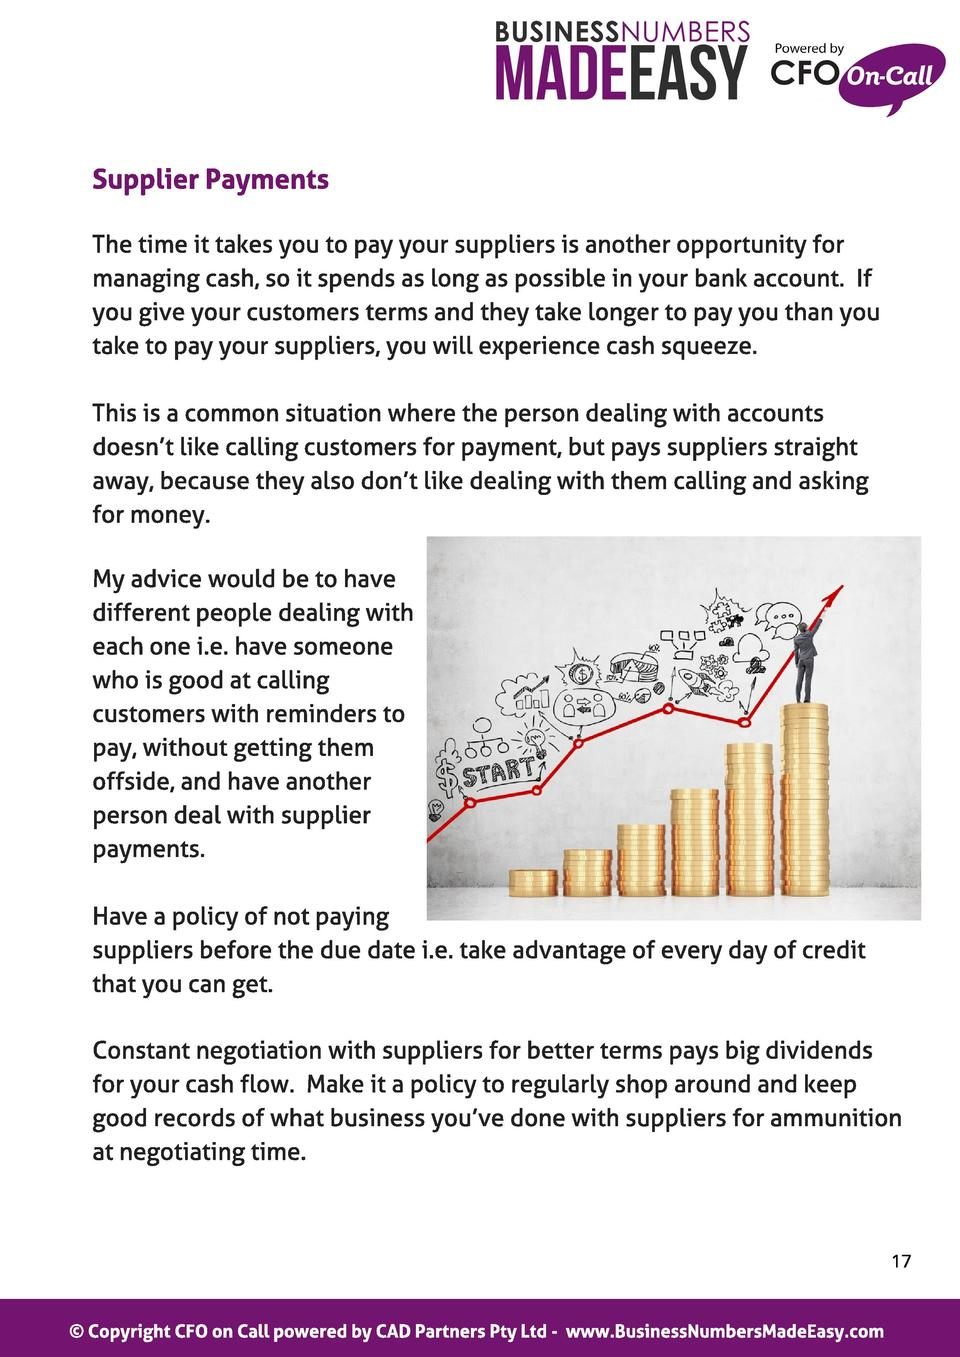 Suppl ier Payment s The time it takes you to pay your suppliers is another opportunity for managing cash, so it spends as ...